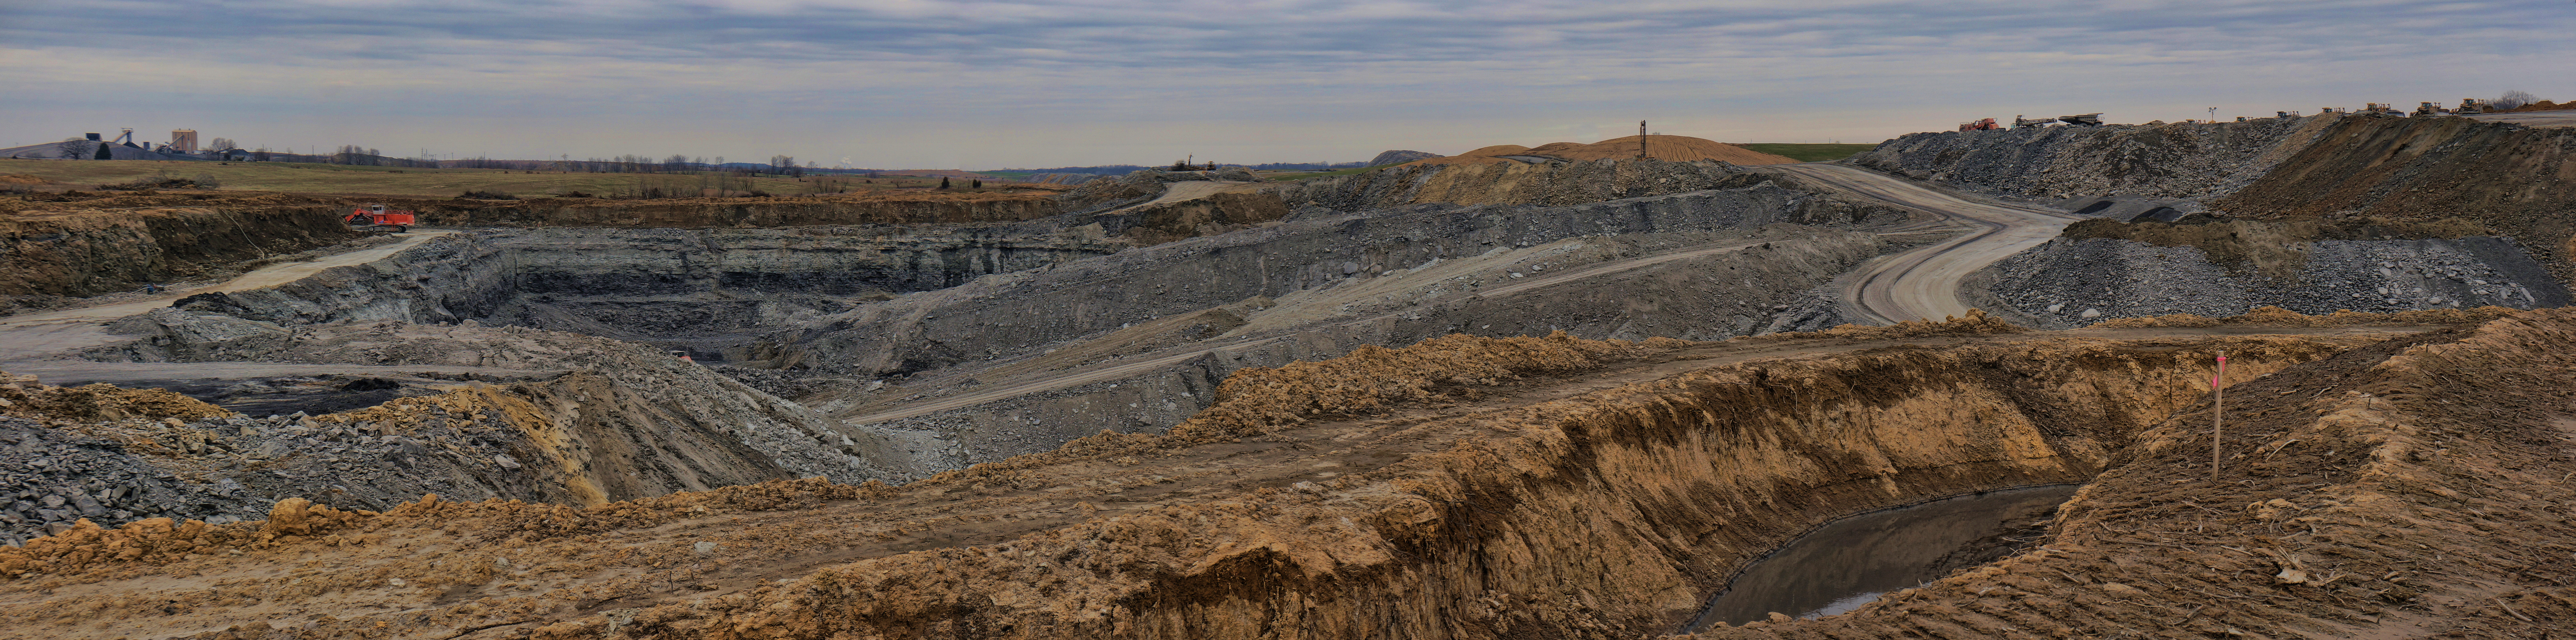 Indiana pike county stendal - Panorama Sony Mining Coal Hugin Nex6